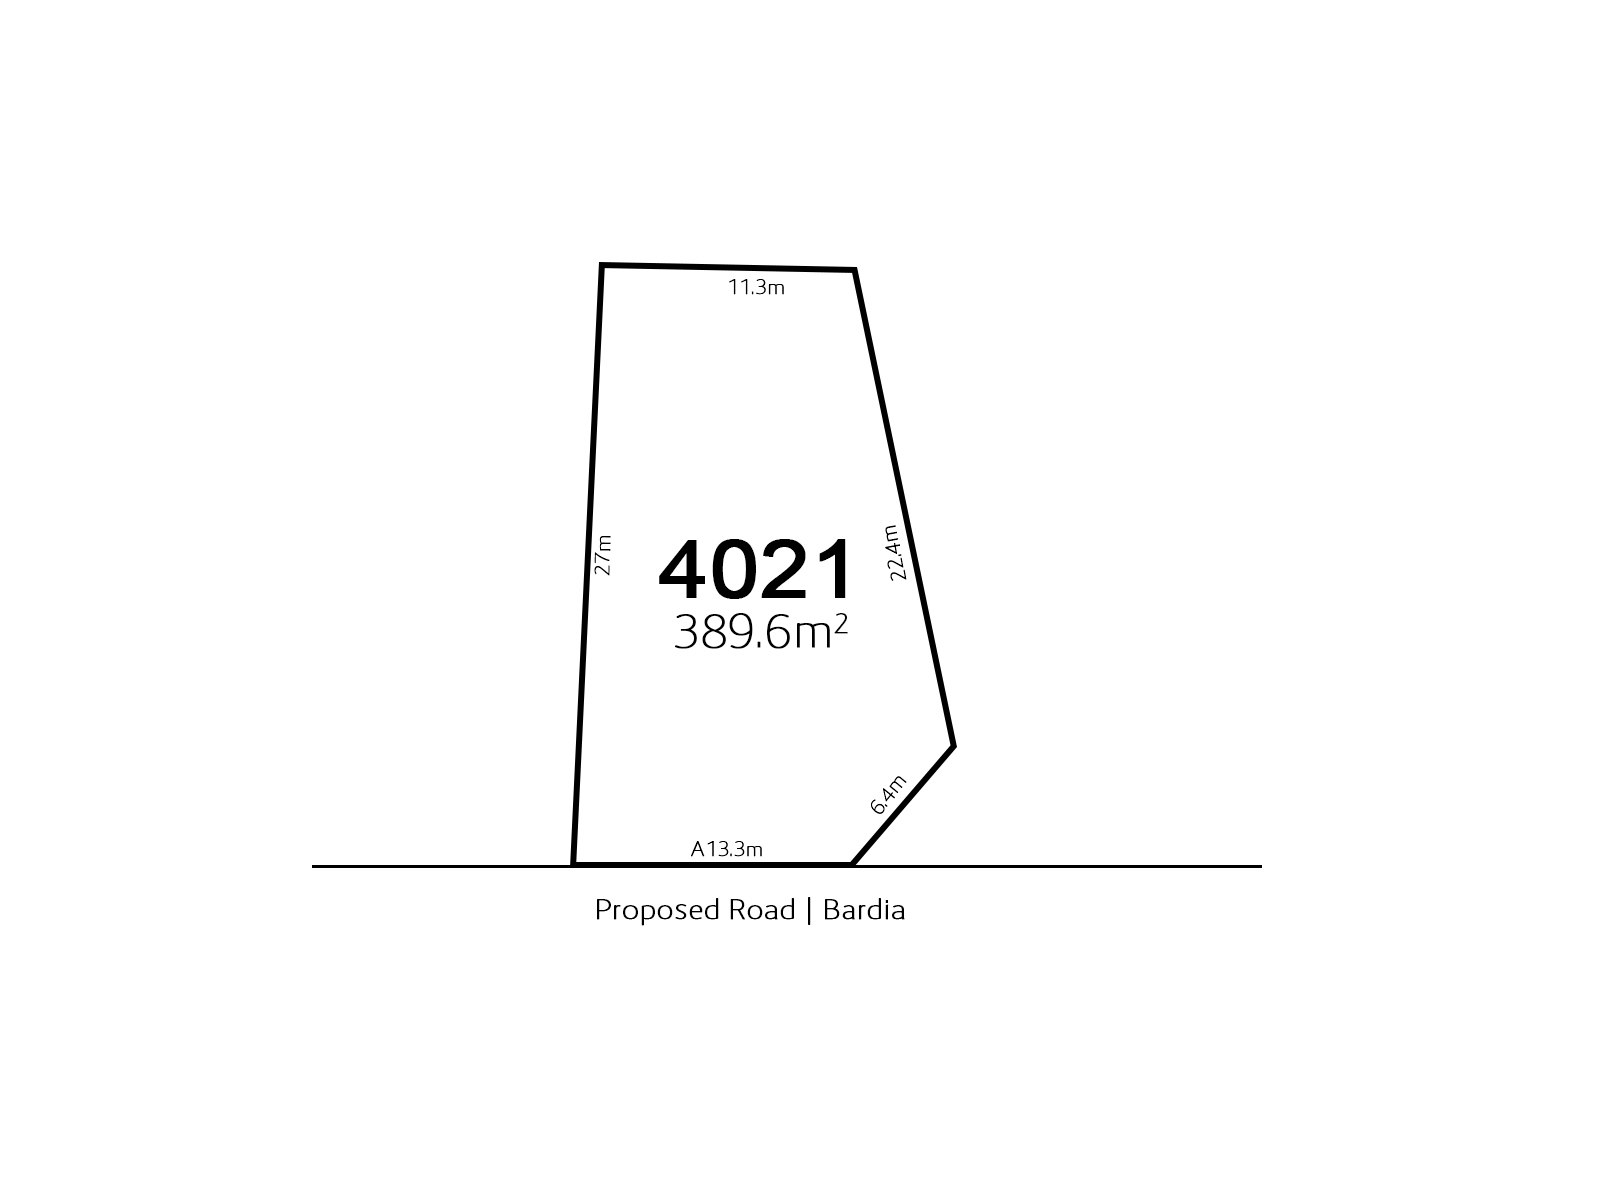 Bardia LOT 4021 Proposed Road | Bardia